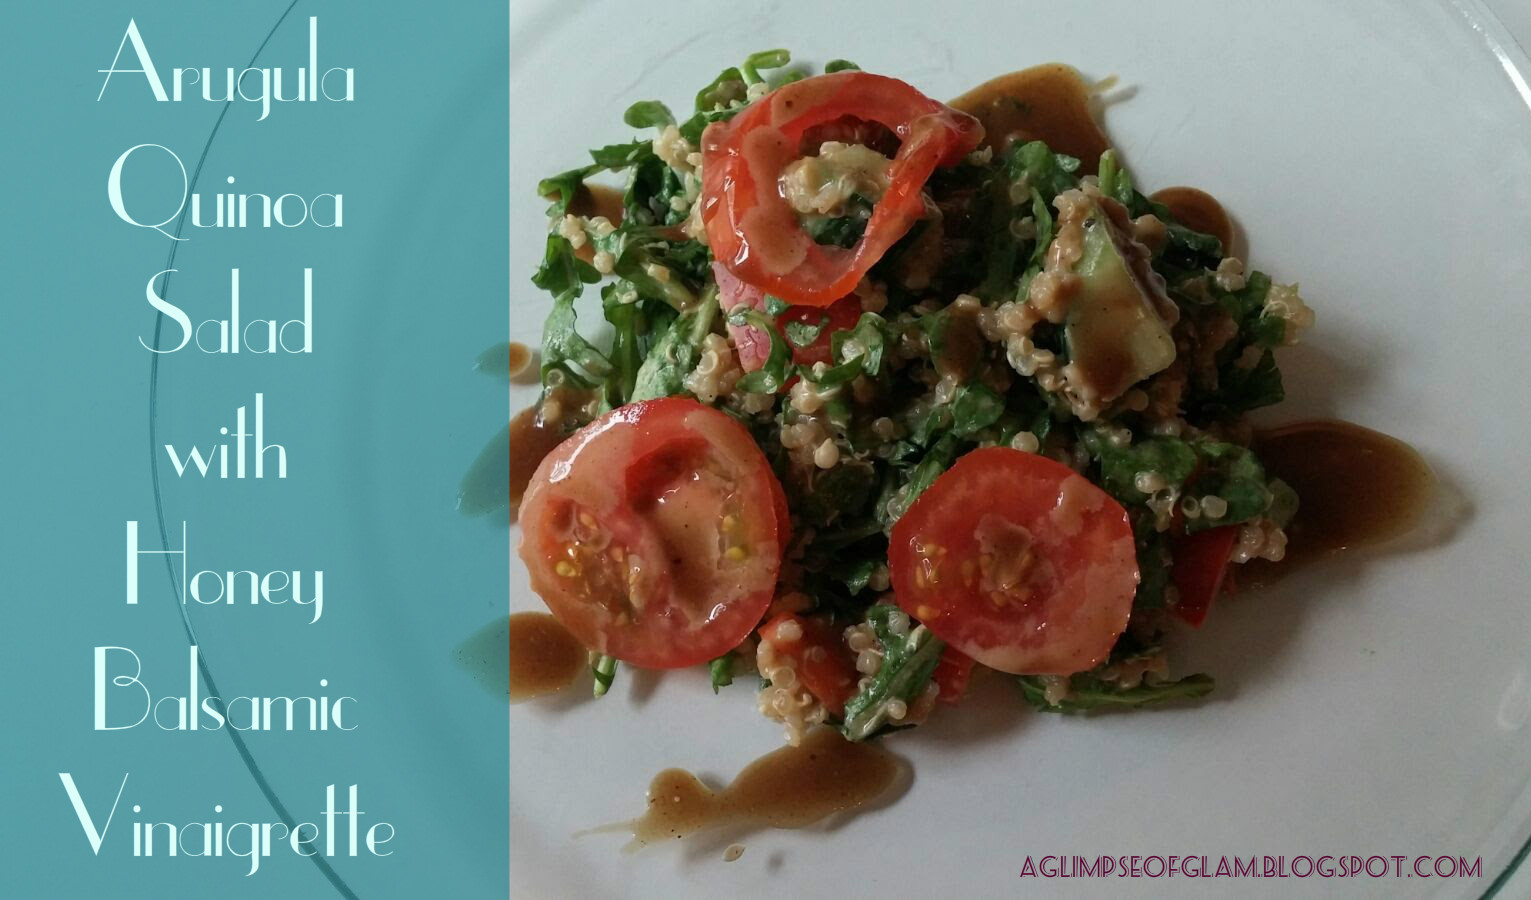 Arugula Quinoa Salad with Honey Balsamic Vinaigrette - Andrea Tiffany aglimpseofglam